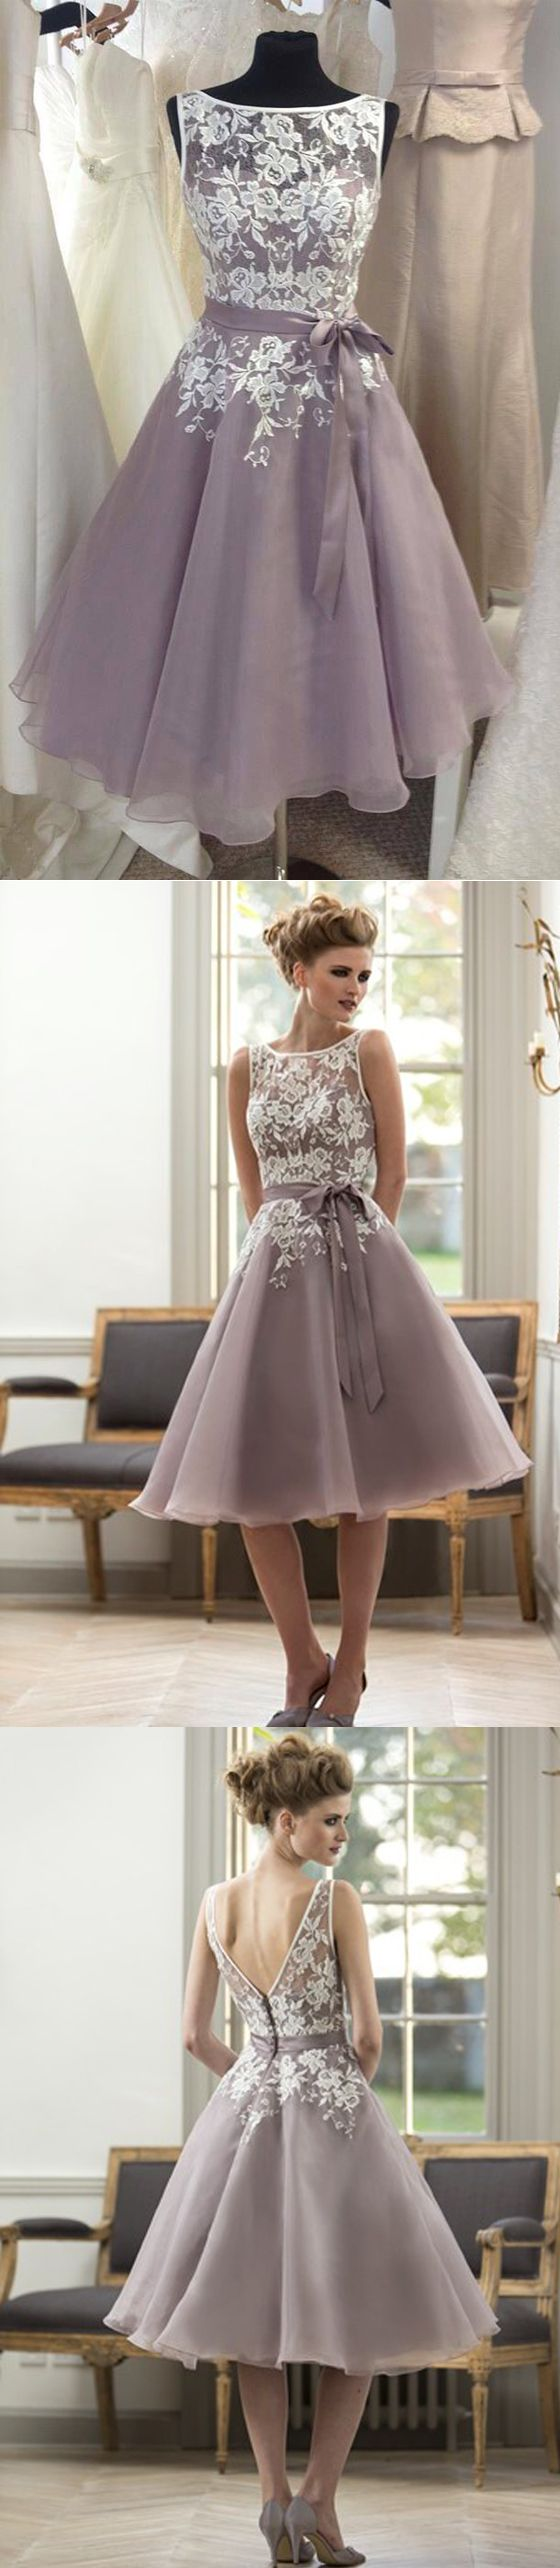 Best 25 organza bridesmaid dress ideas on pinterest glamorous lace bridesmaid dresses short bridesmaid dresses off shoulder bridesmaid dresses organza bridesmaid dresses unique bridesmaid dresses ombrellifo Image collections